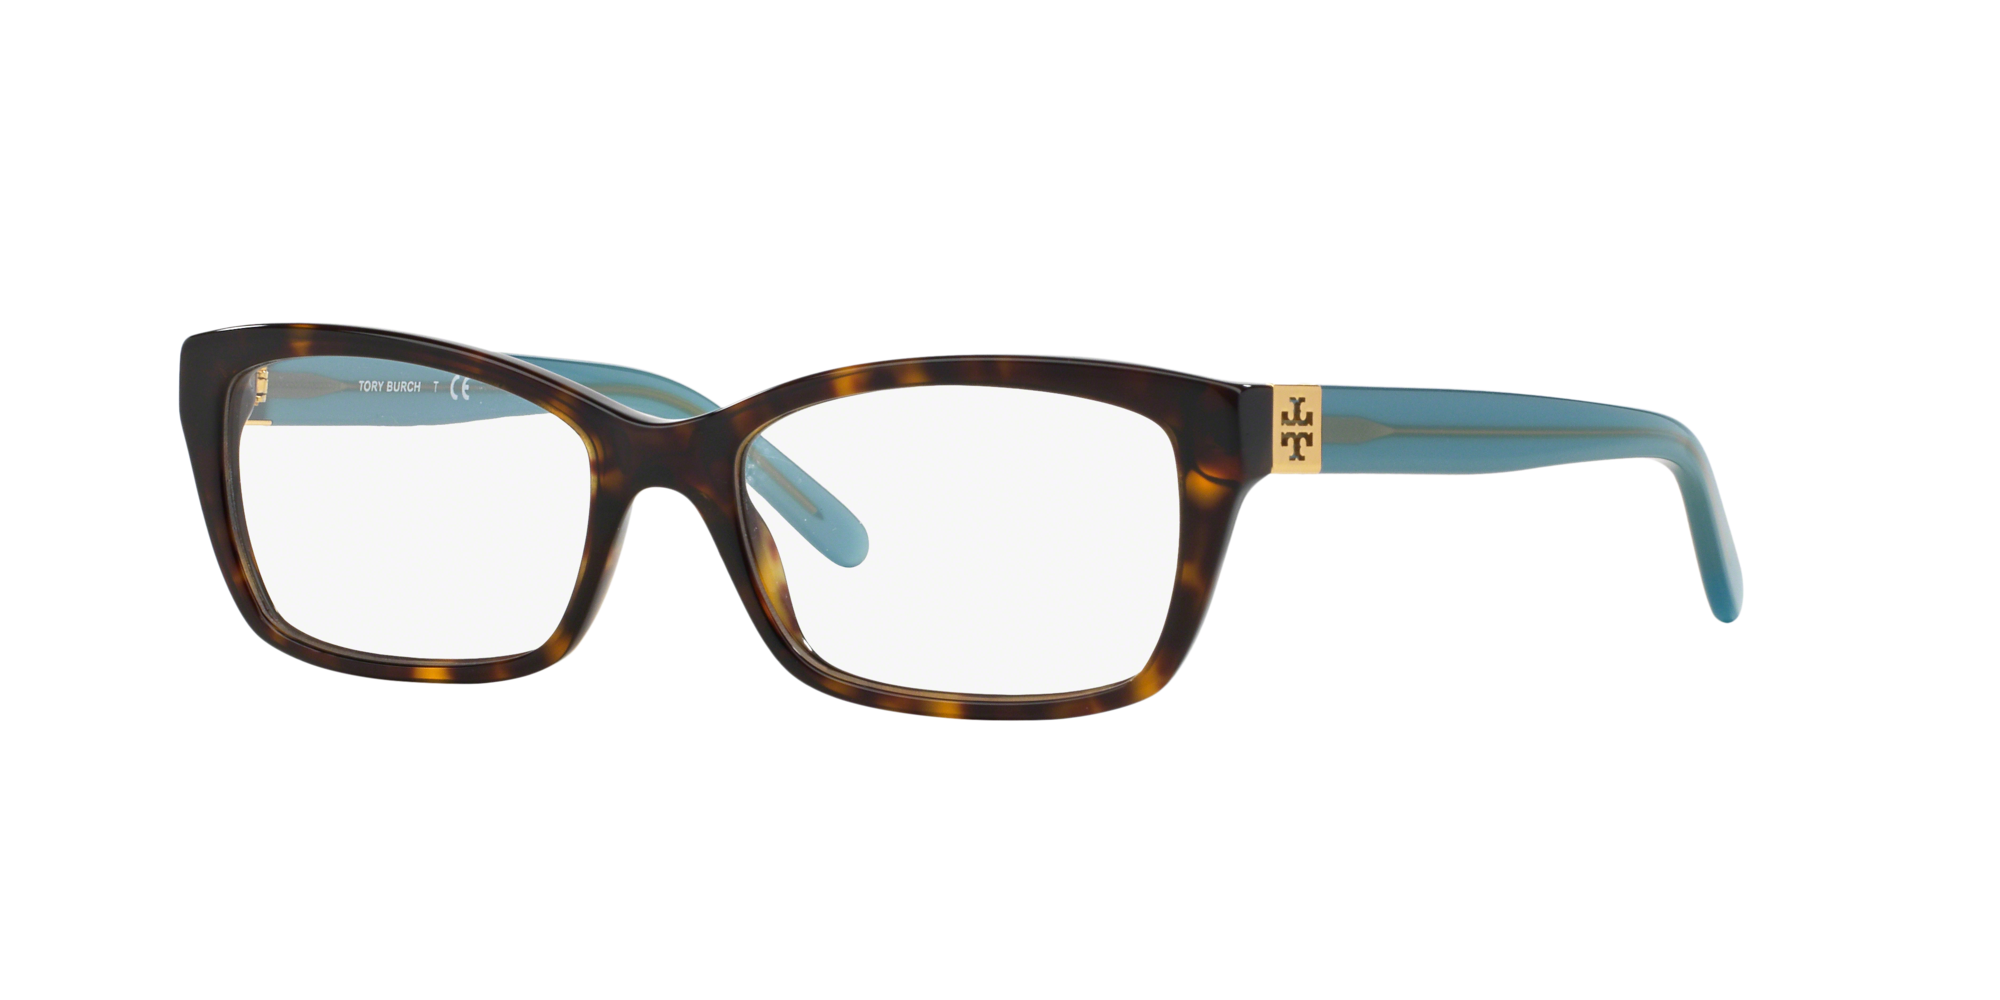 5570d9333e58 The colorful temple on these #toryburch frames make them fun and youthful. # eyewear #womensfashion